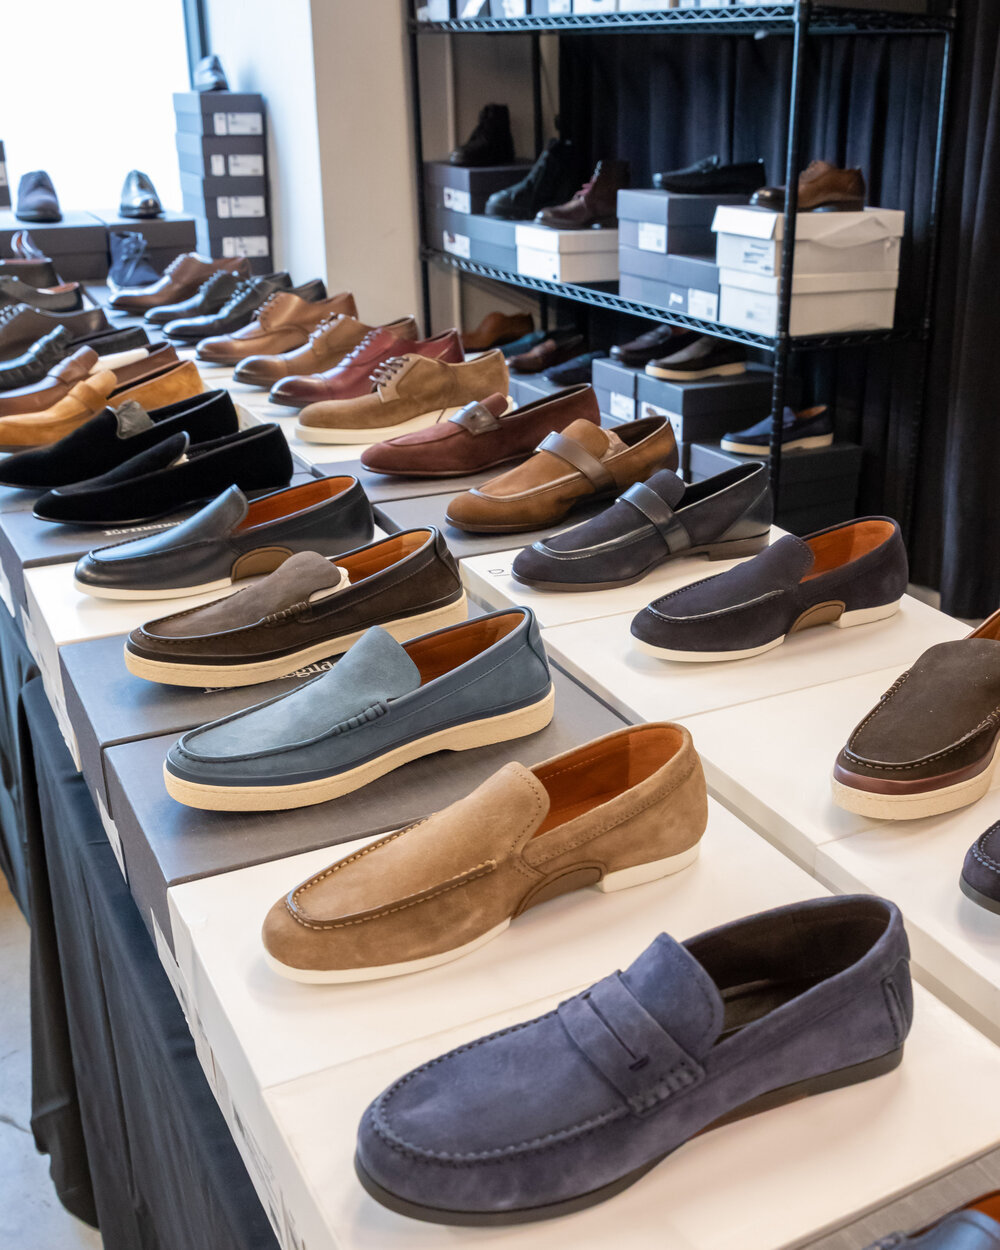 Pics from Inside the Zegna Sample Sale